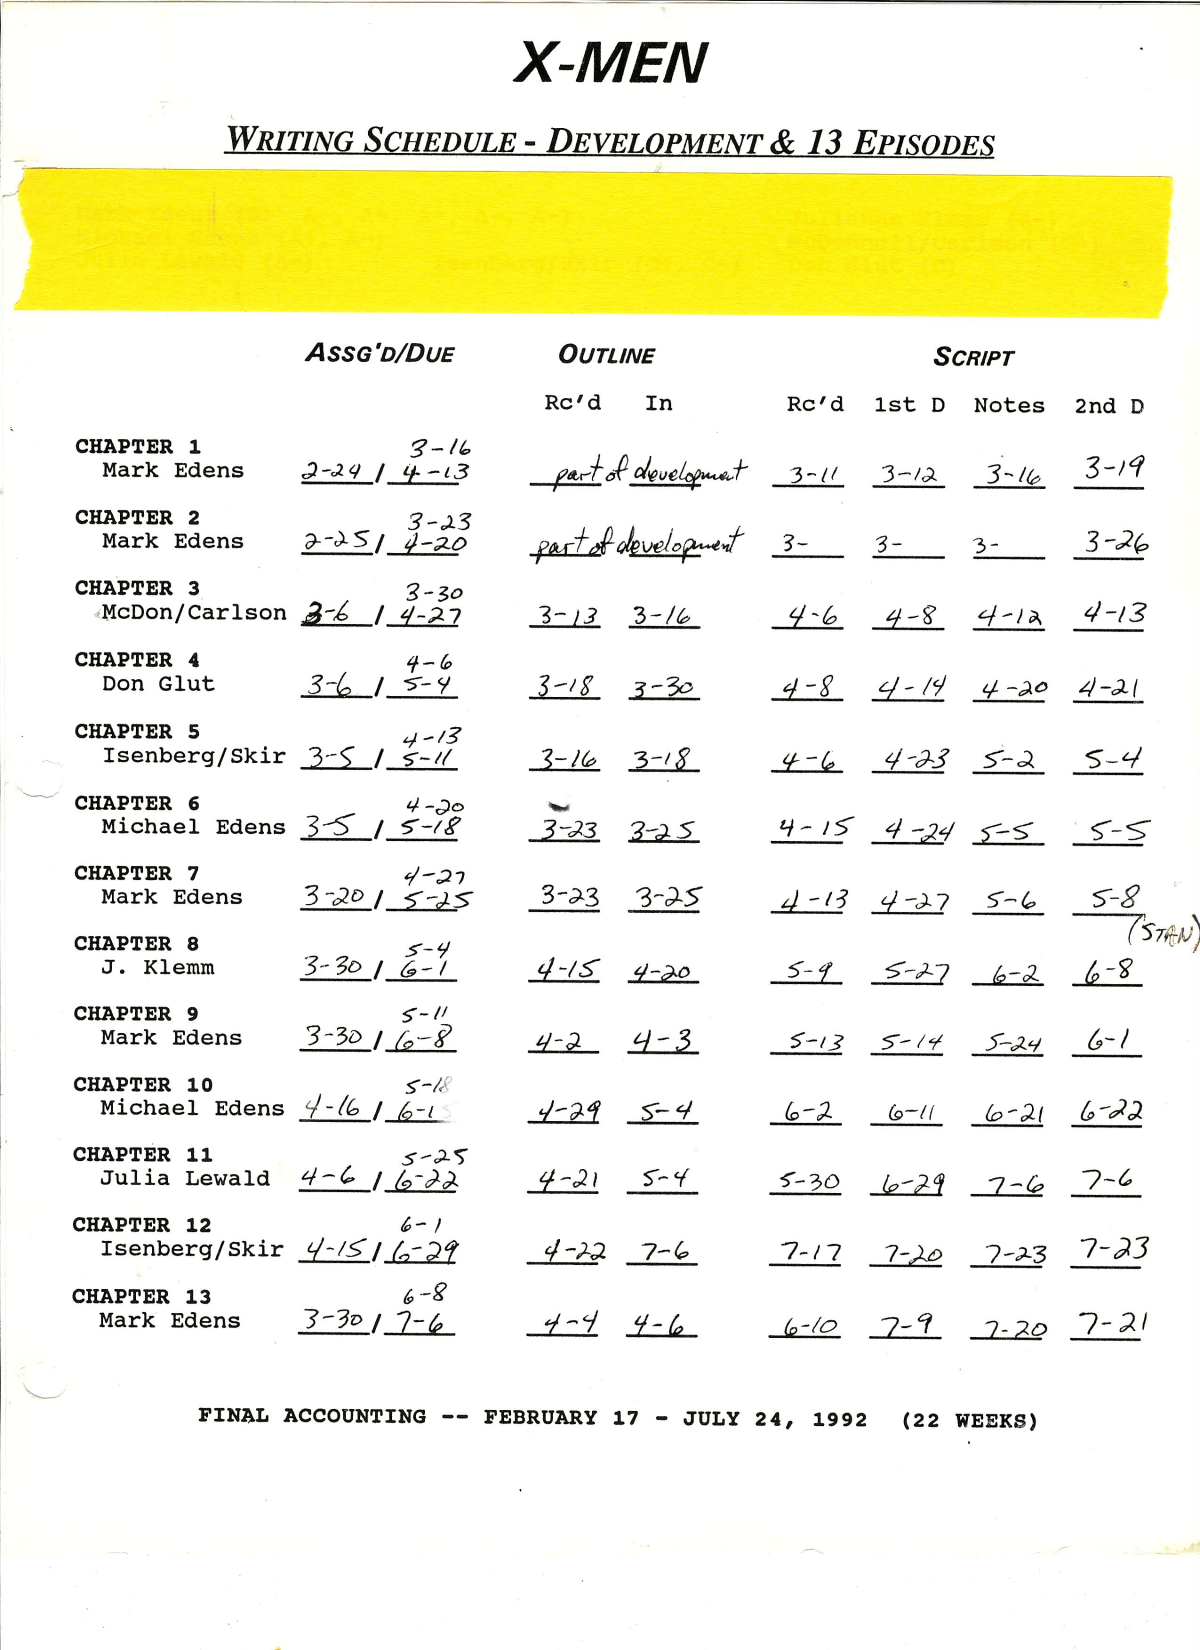 year 1 schedule.png